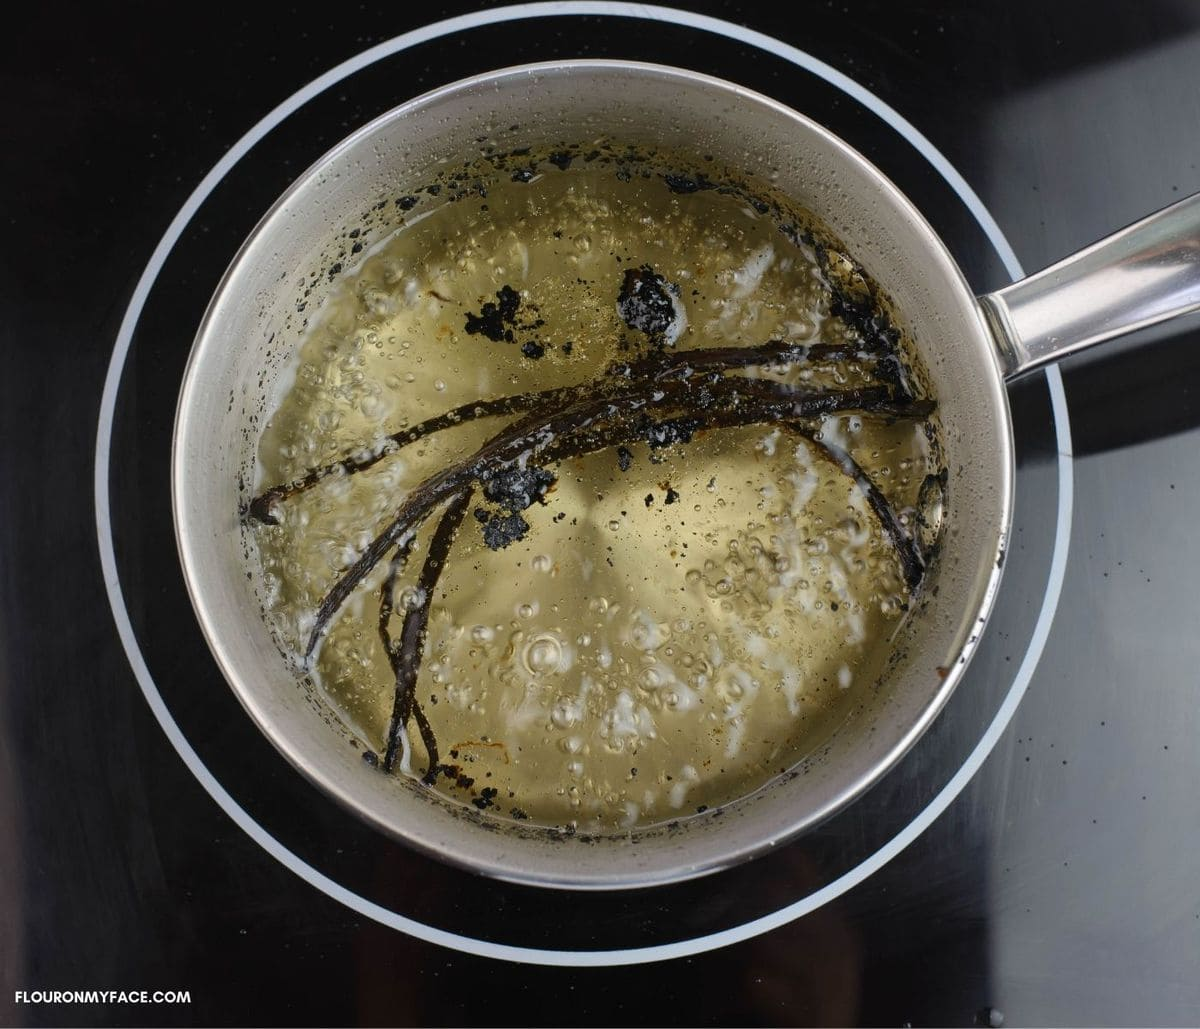 Vanilla bean syrup in a small pan  simmering on a burn.